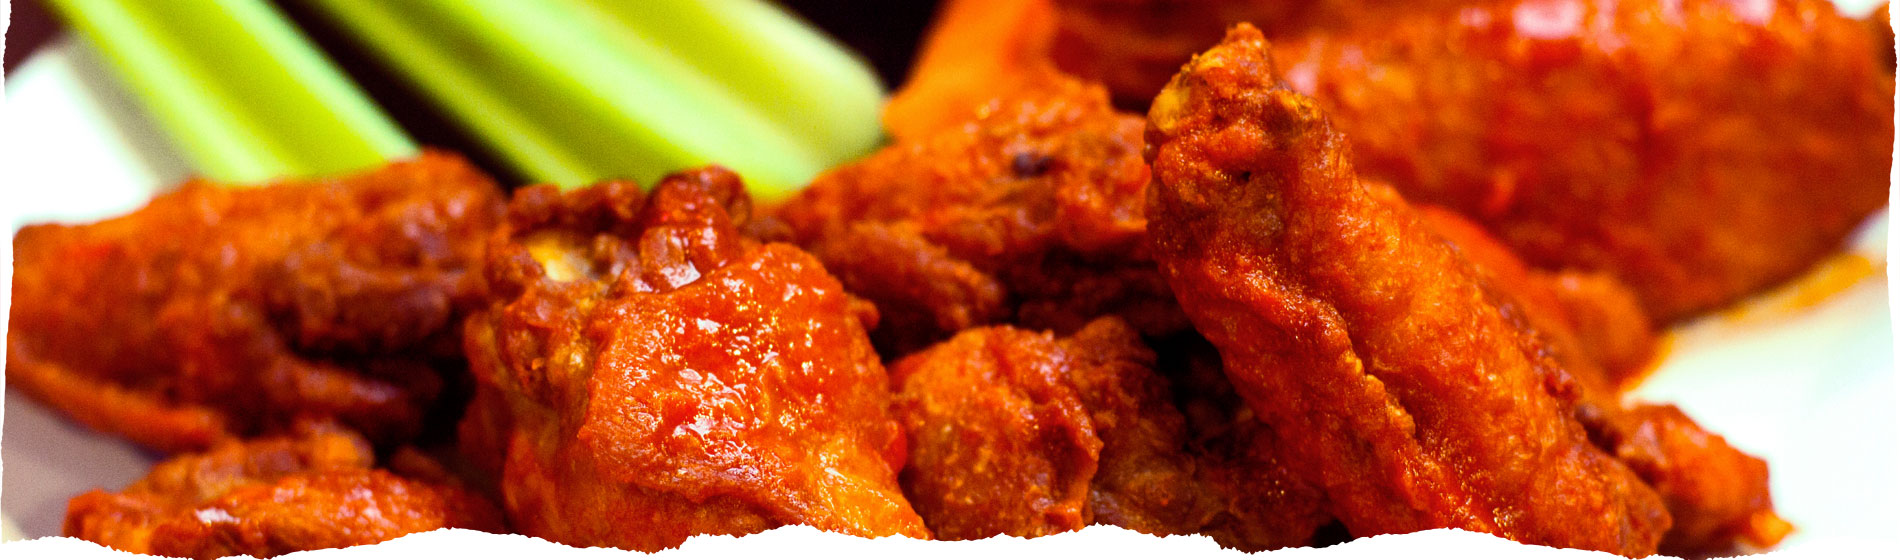 Wing Shack Coupons >> About - Wing Shack Wings